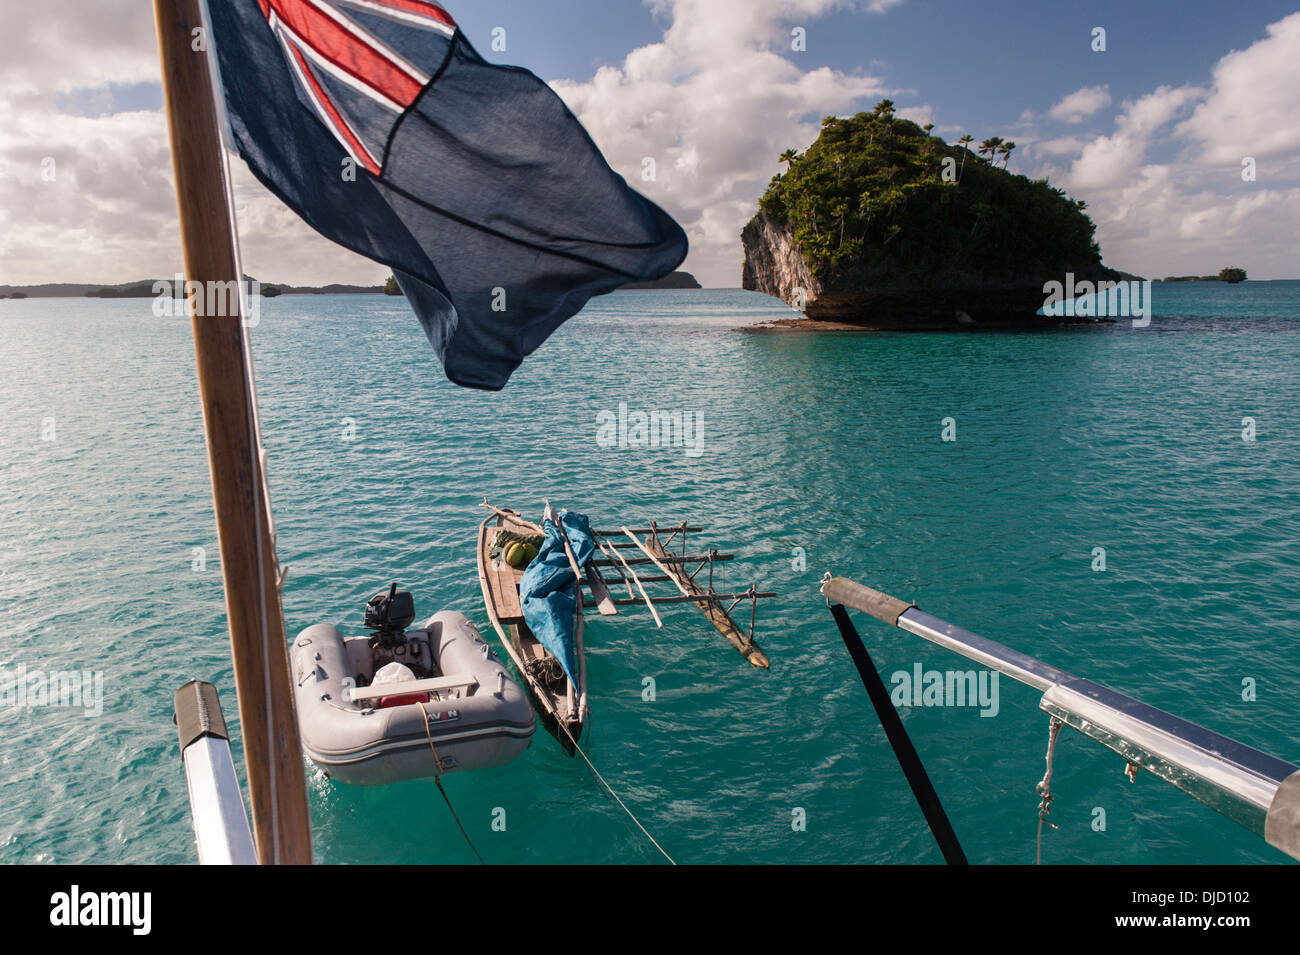 A traditional local sail boat, called a camakau, and a dinghy hanging off the back of a visiting yacht. Fulaga lagoon, Laus Fiji - Stock Image